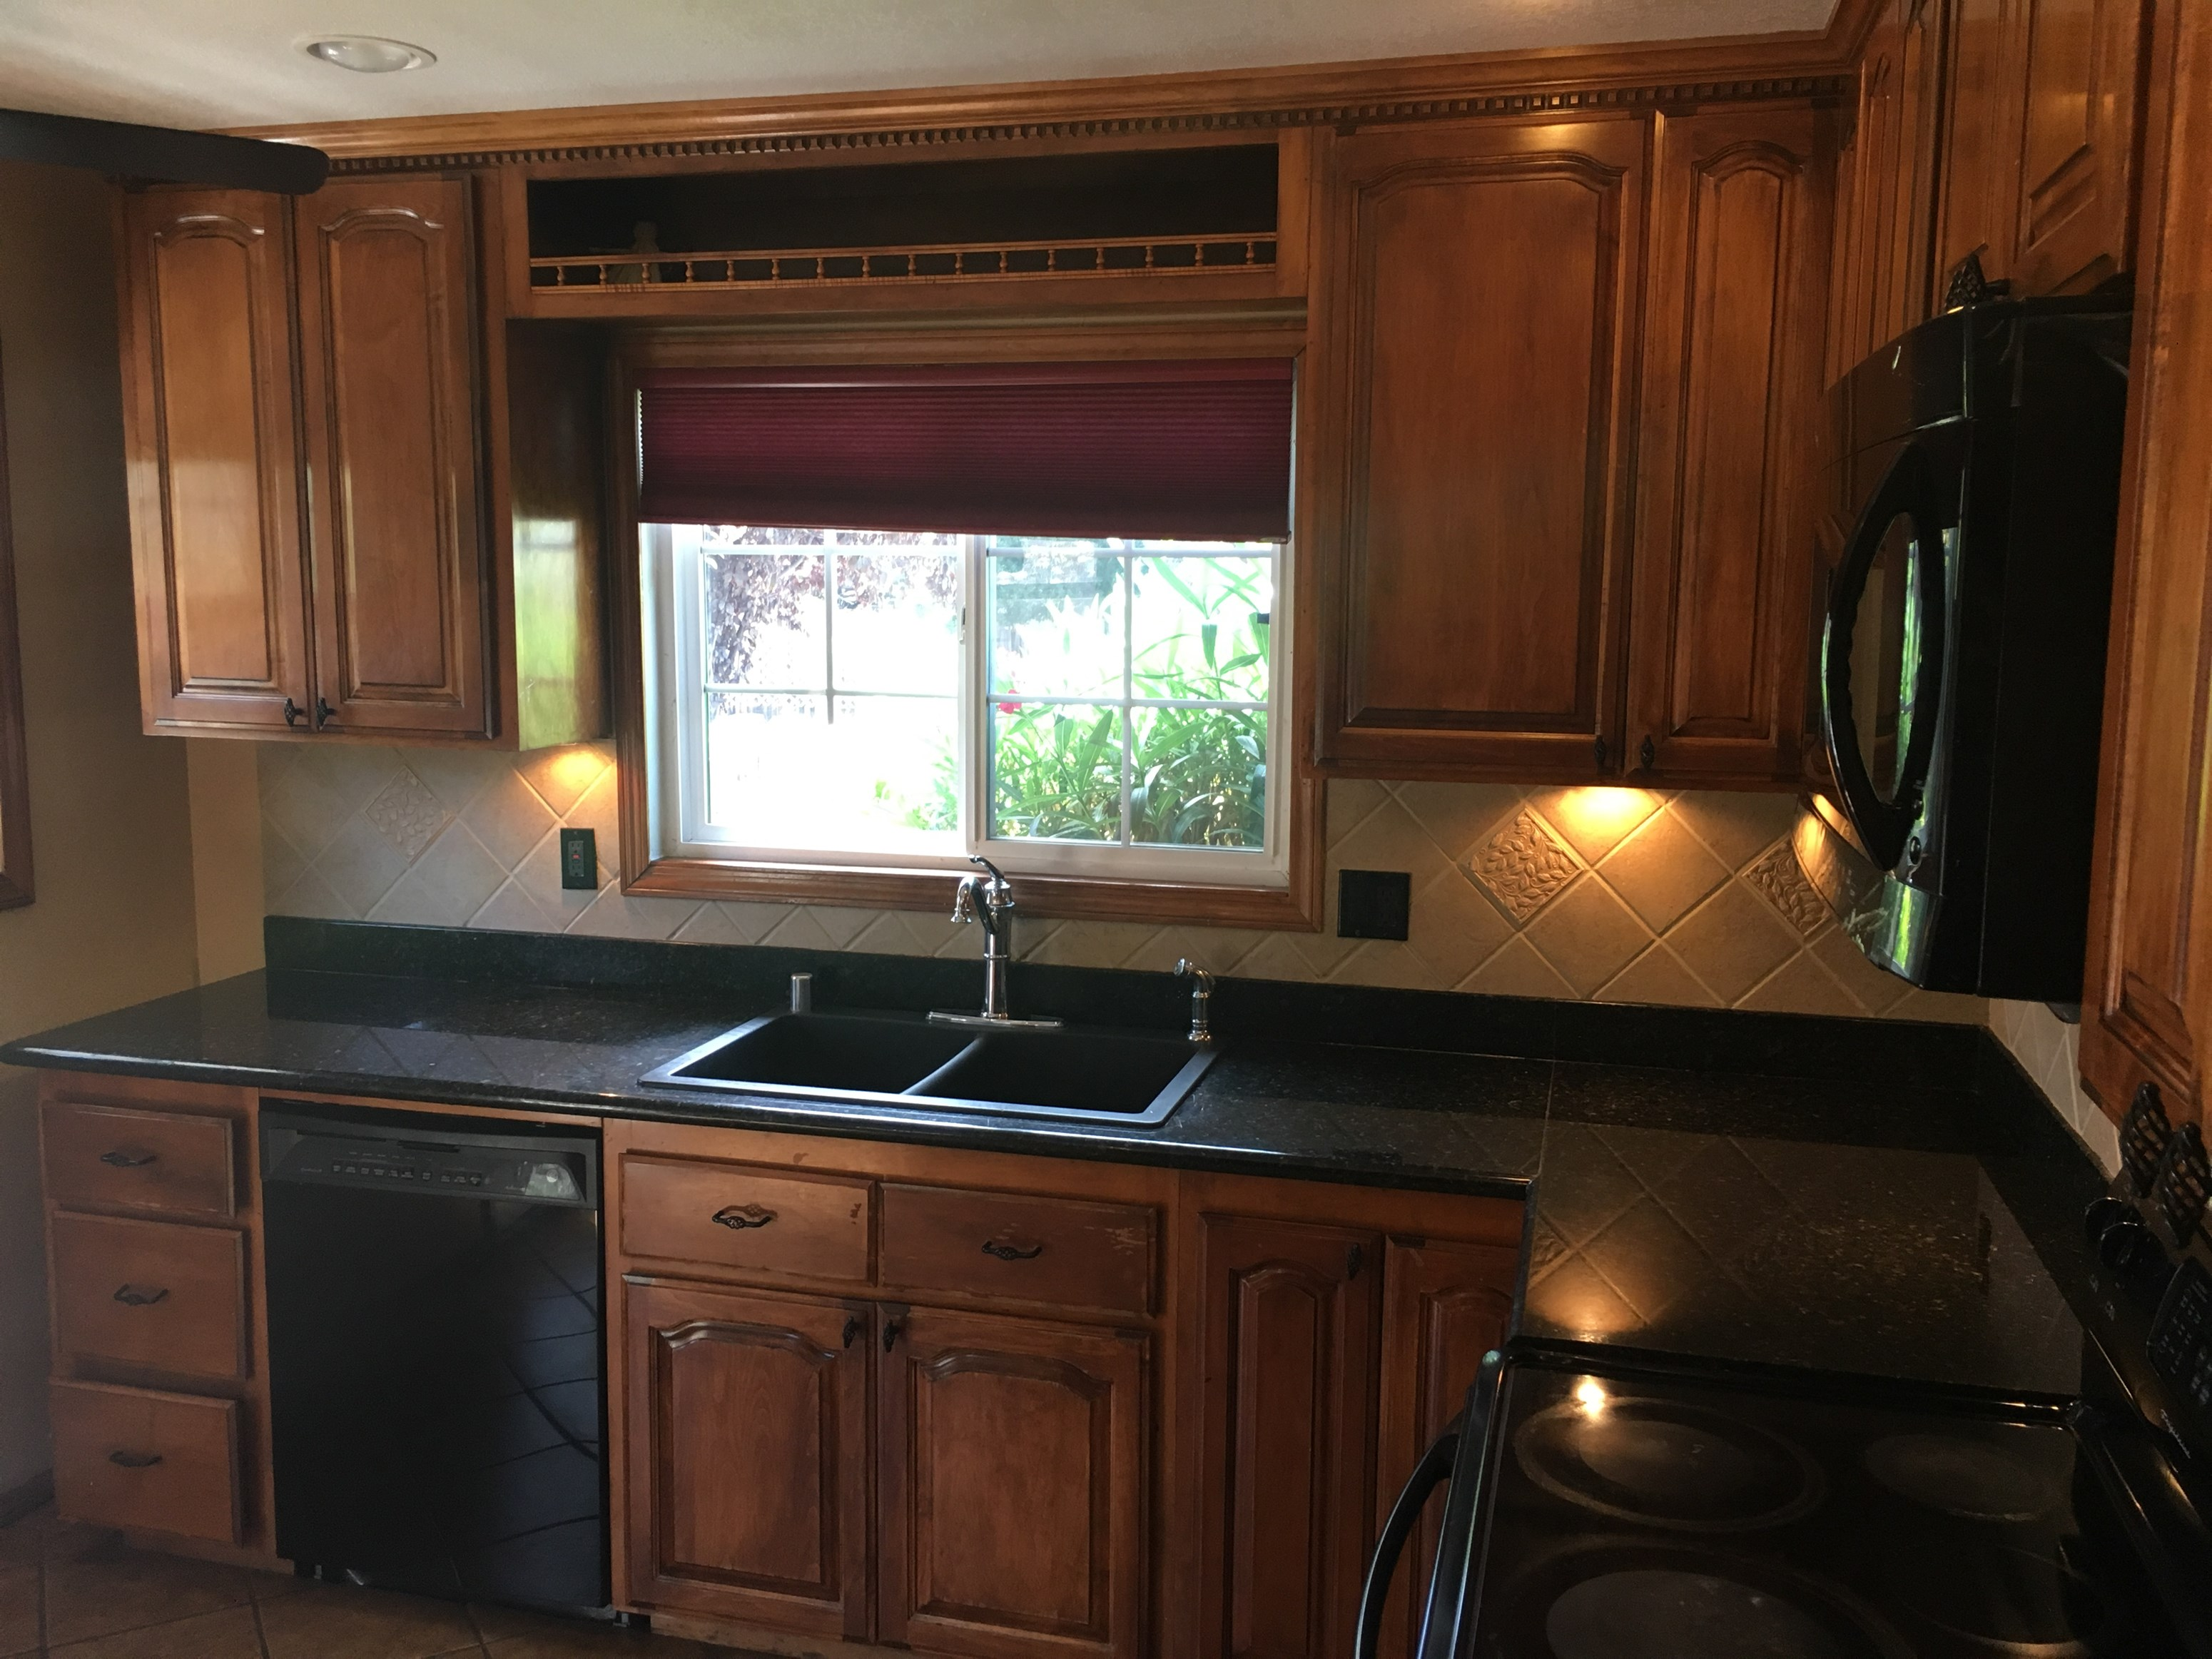 Single Family Home For Rent   3 BHK Single Family Home in Fremont, CA    1176576 - Sulekha Rentals